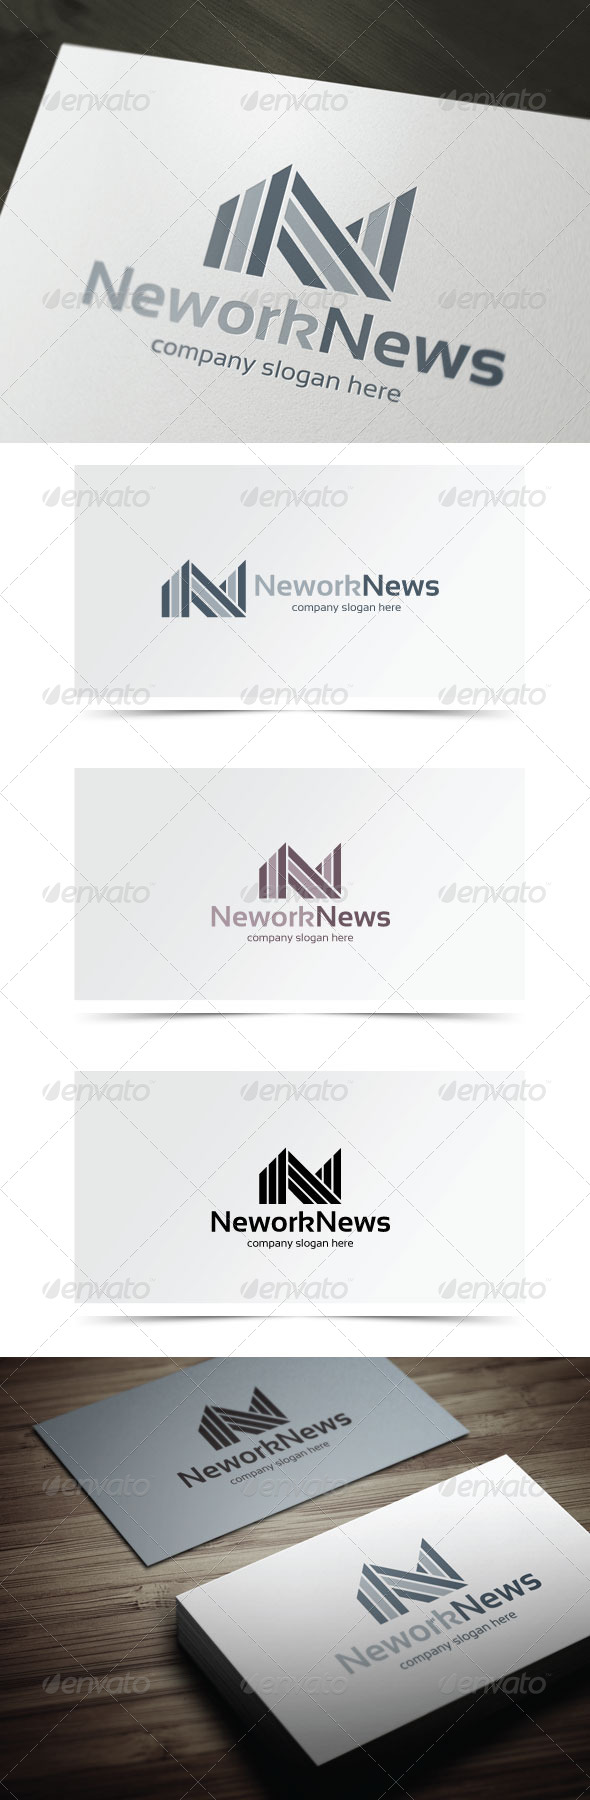 GraphicRiver Network News 6289024